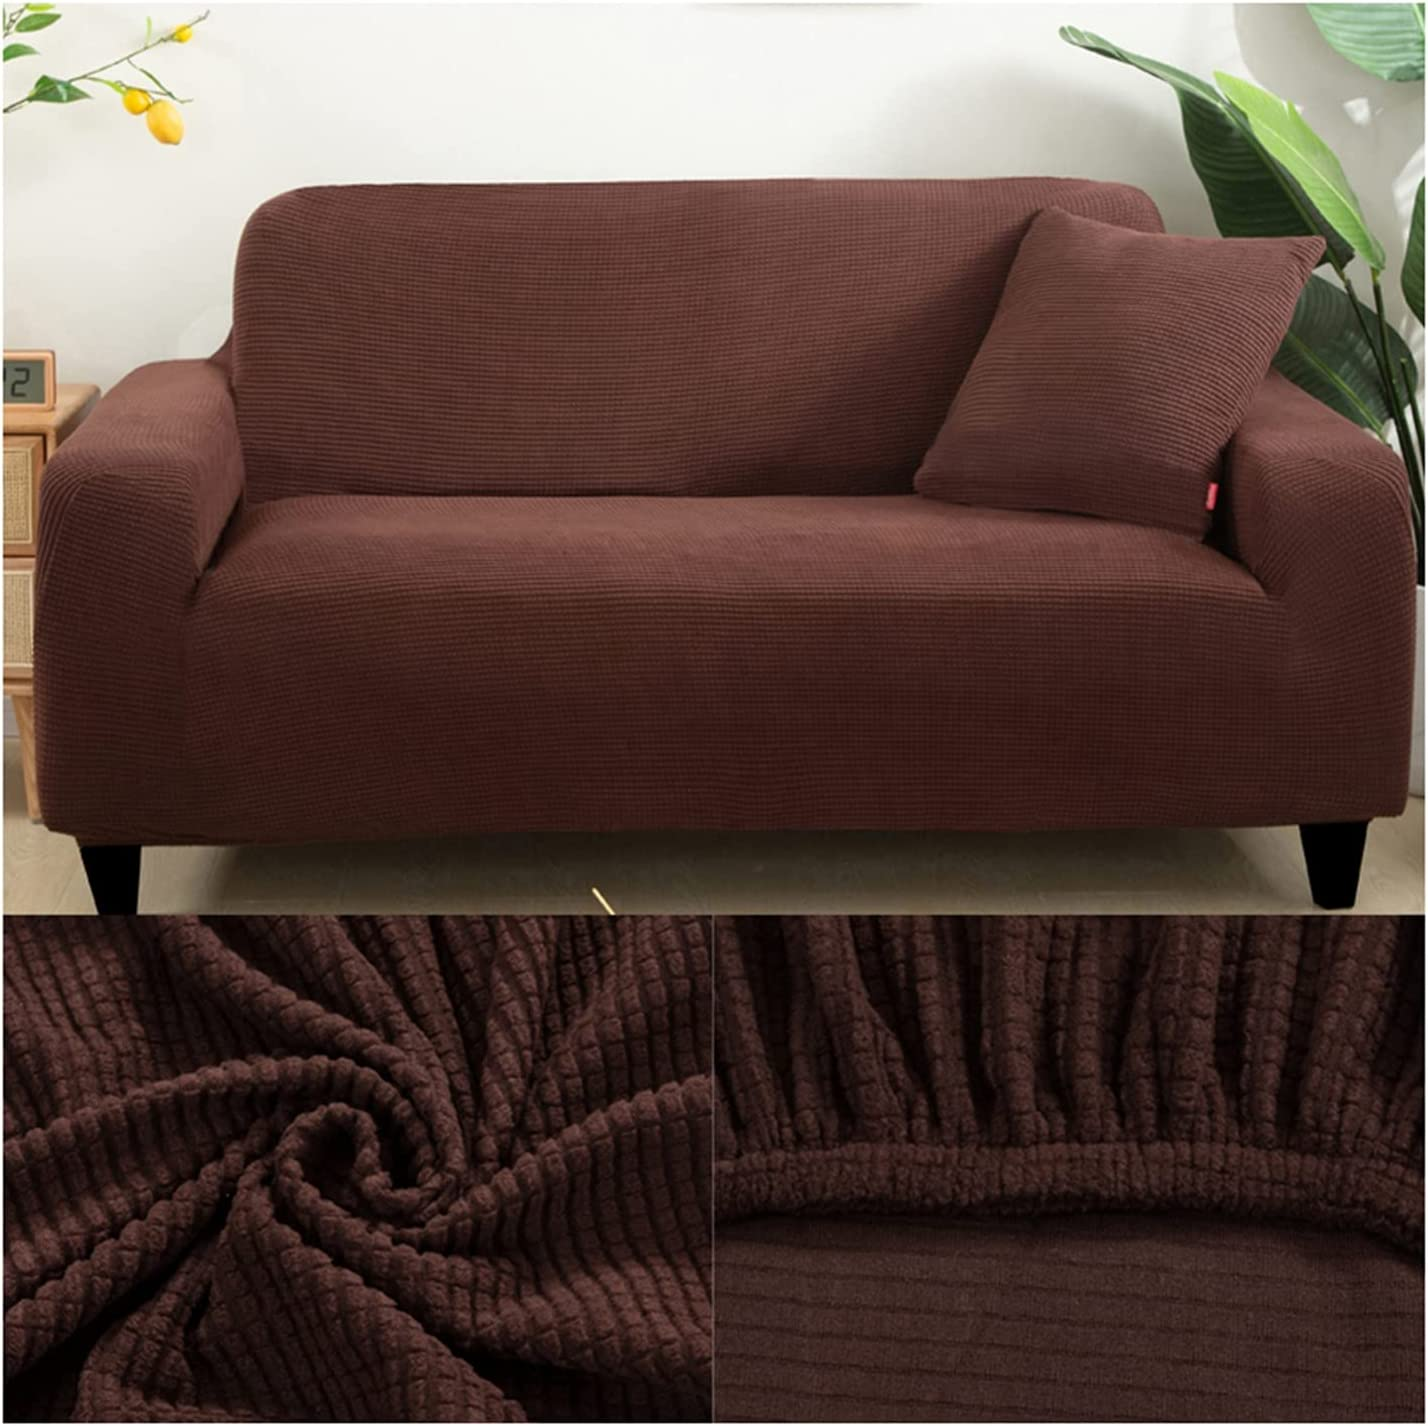 Fixed price for sale XINLEI Couch Max 86% OFF Seat Cover Thick Jacquard Sofa Solid Prin Protector